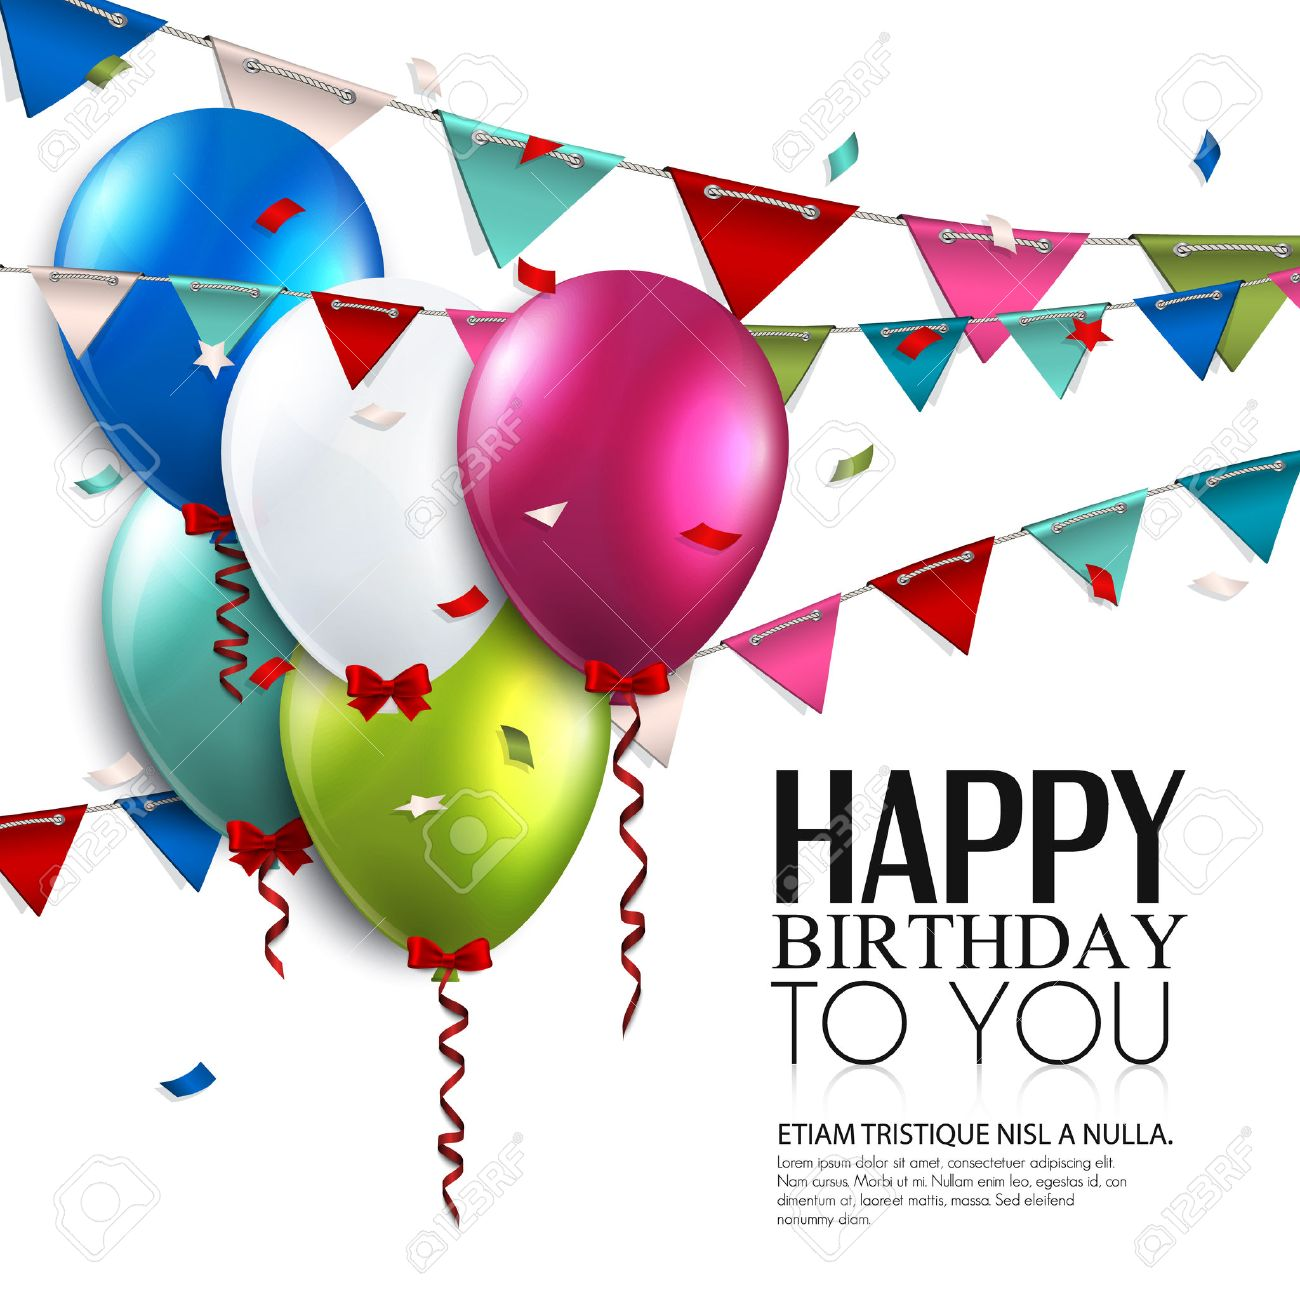 Vector Birthday Card With Balloons And Bunting Flags Royalty Free – Vector Birthday Card